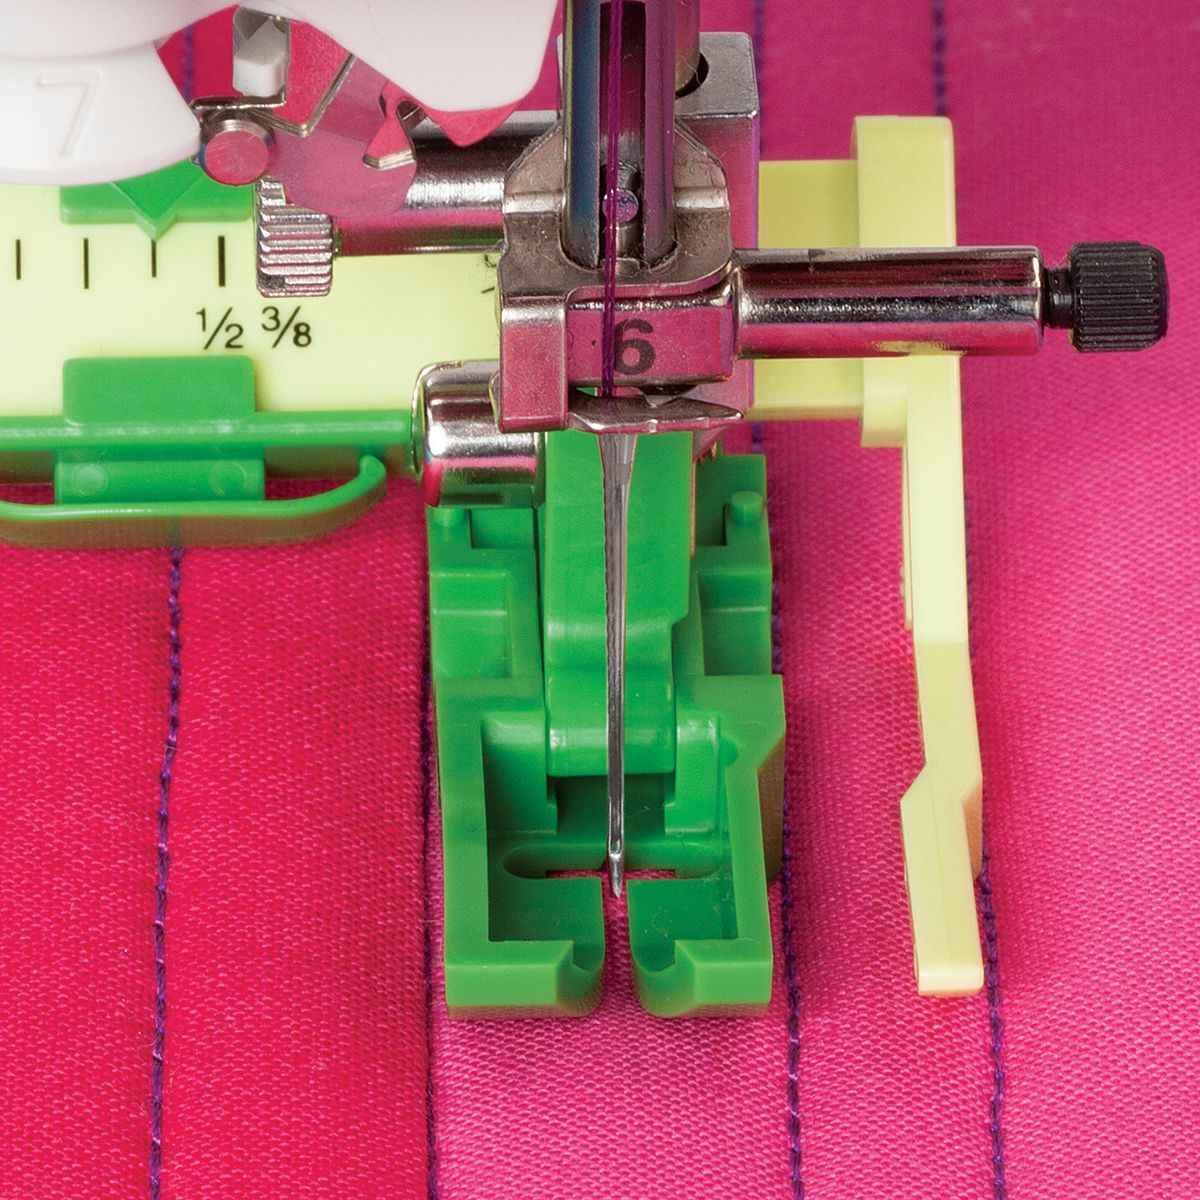 The Ultimate Quilt 'N Stitch Presserเท้าสำหรับจักรเย็บผ้าLow Shank # PSF-C01